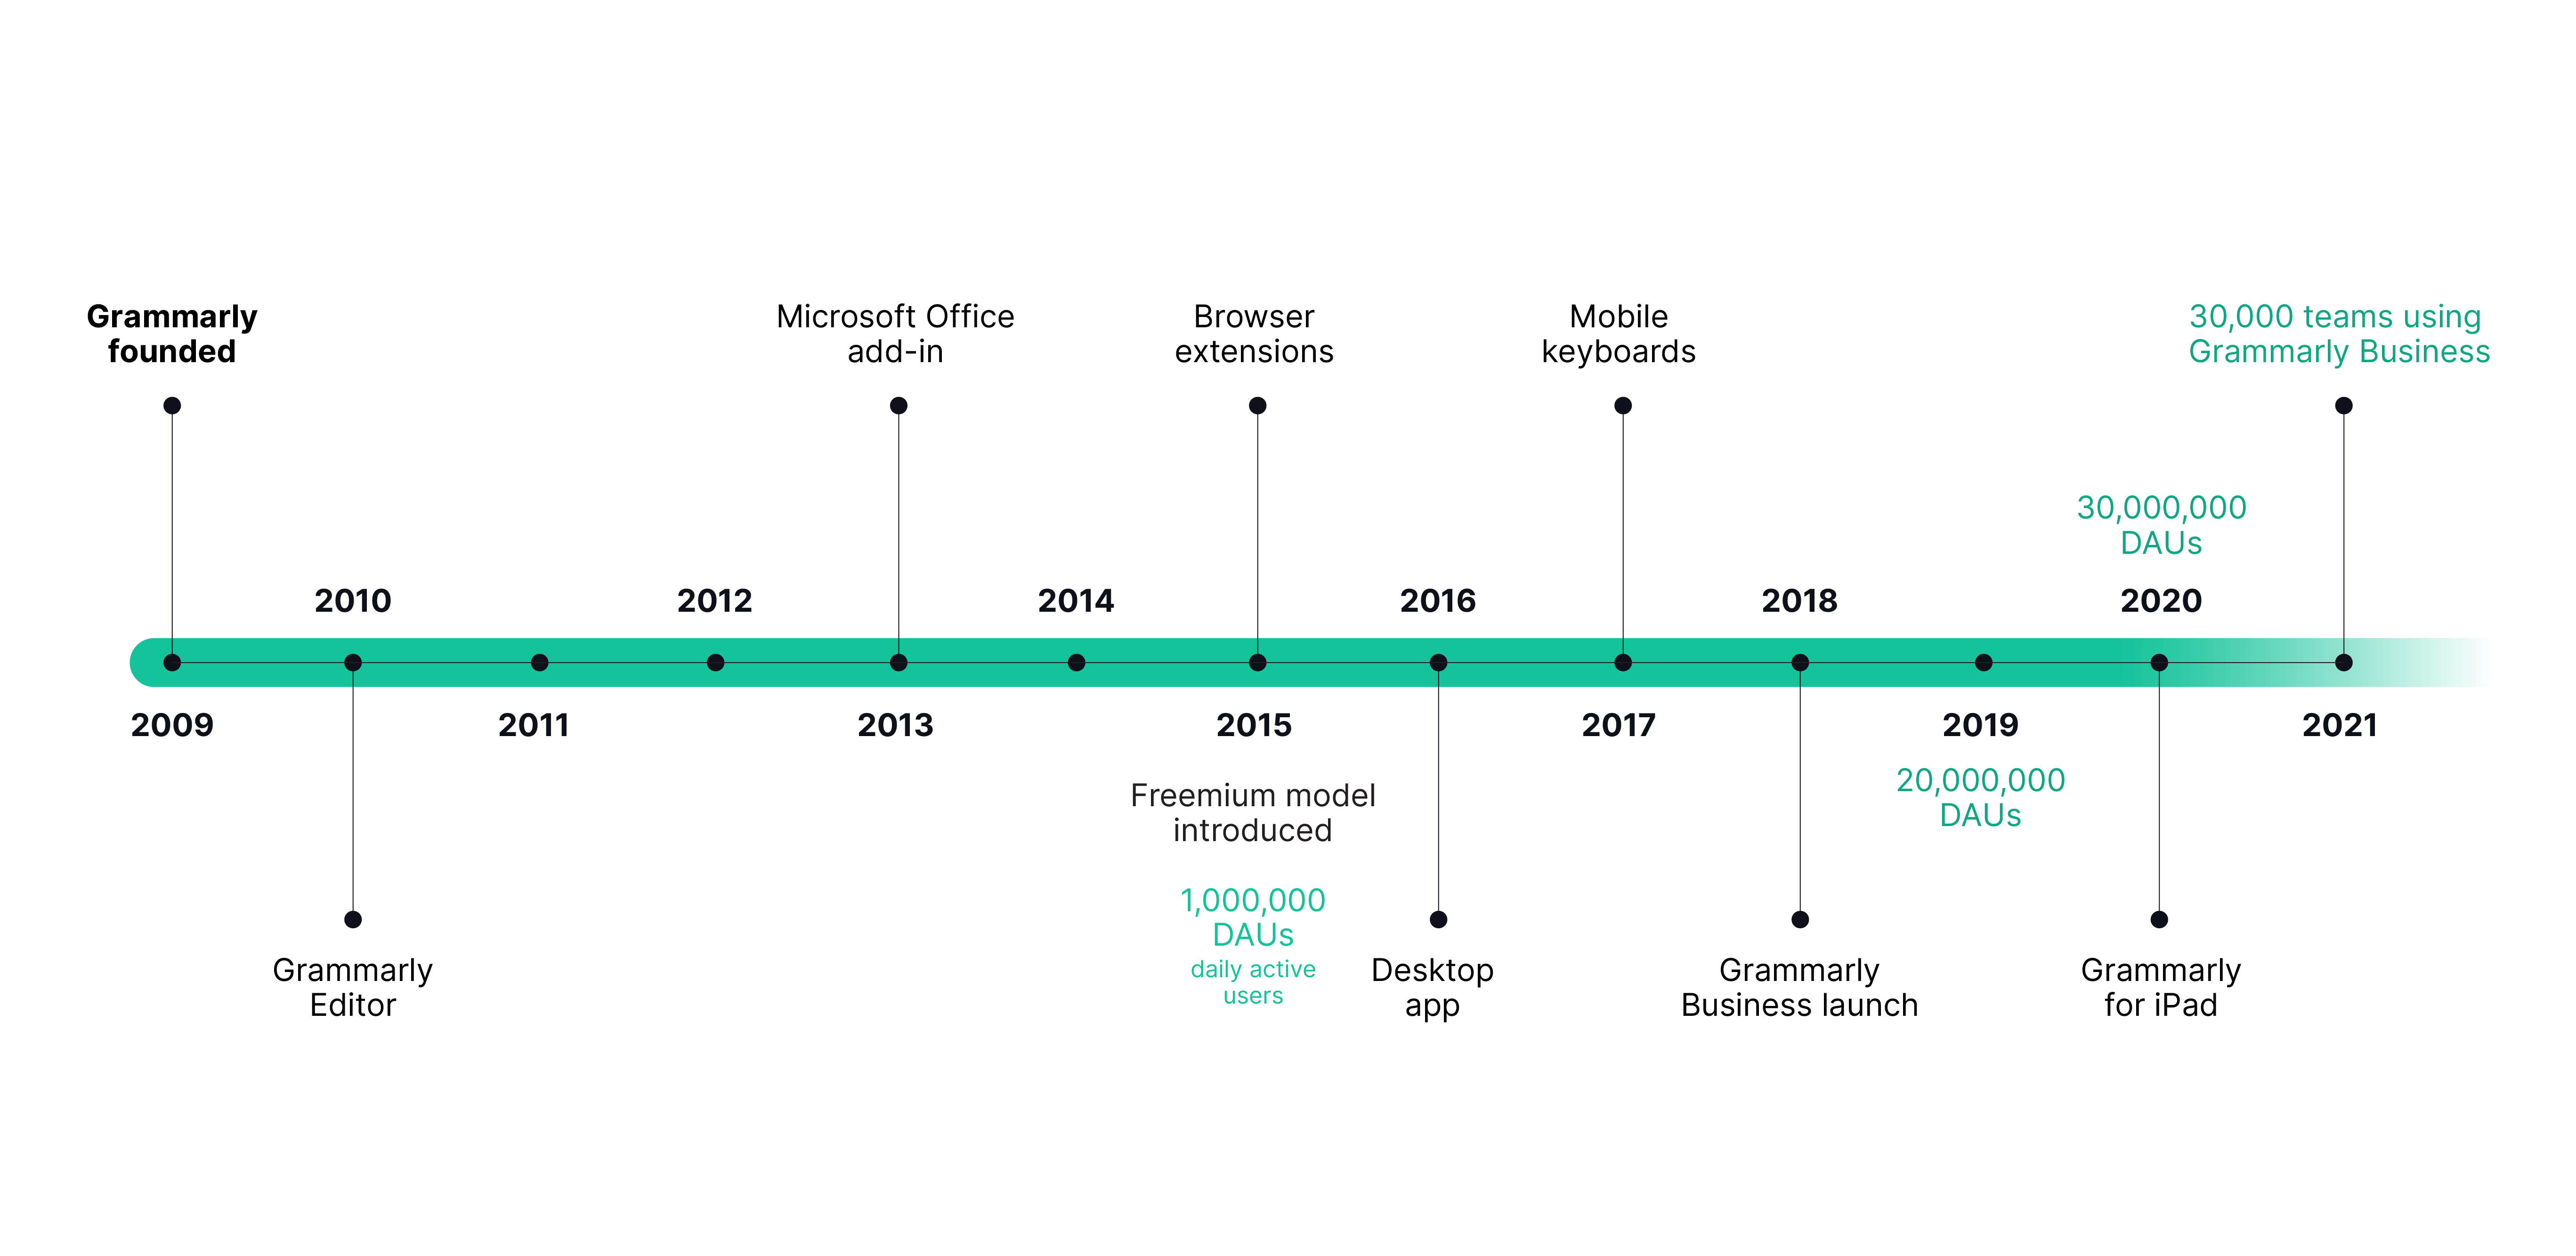 The timeline behind how was Grammarly developed and improved.